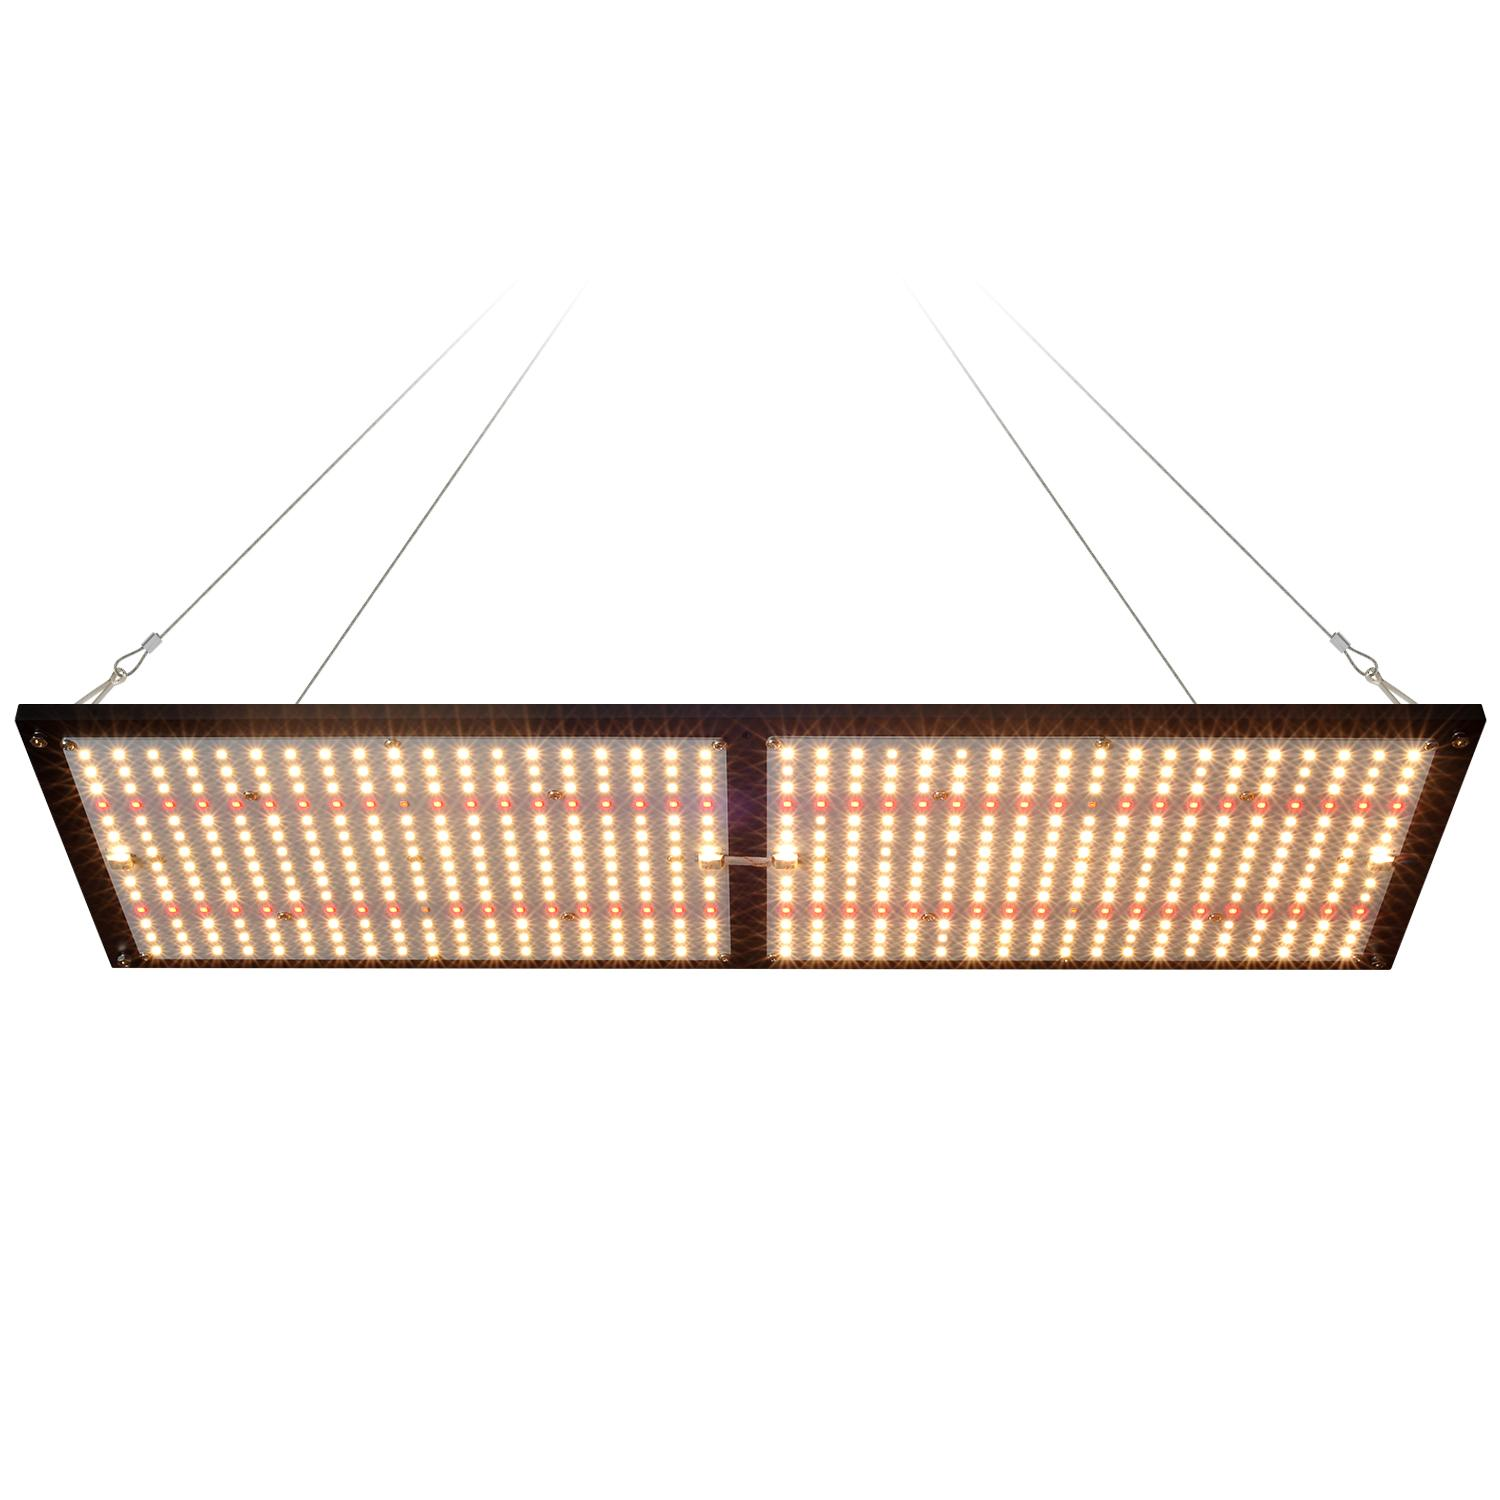 240W Samsung LM301H DIMMABLE LED تنمو ضوء V3 Board 3000K / 3500K / 4000K 660NM IR